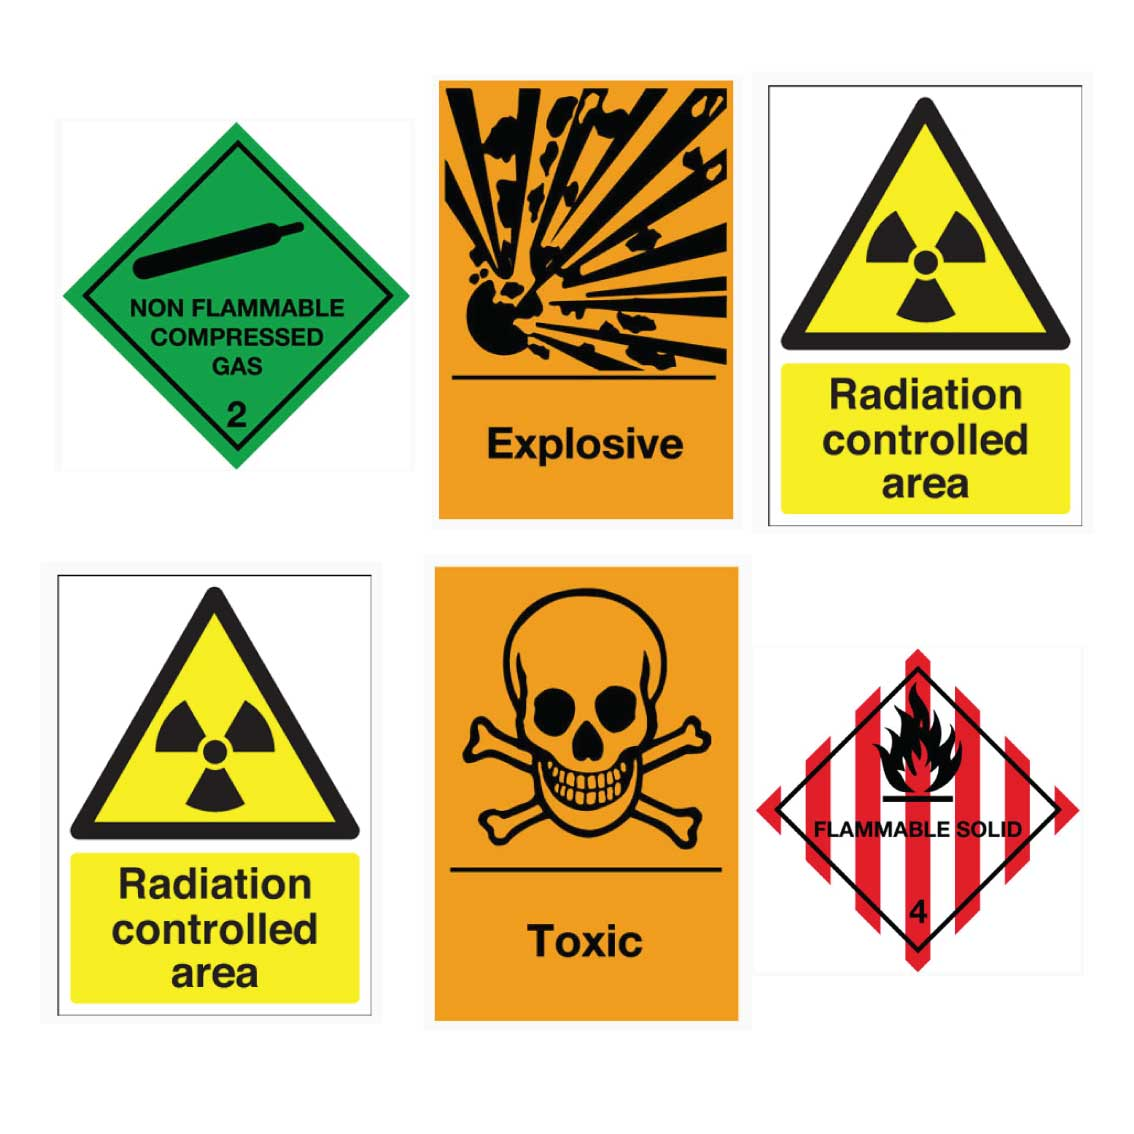 Hazardous Substance Control